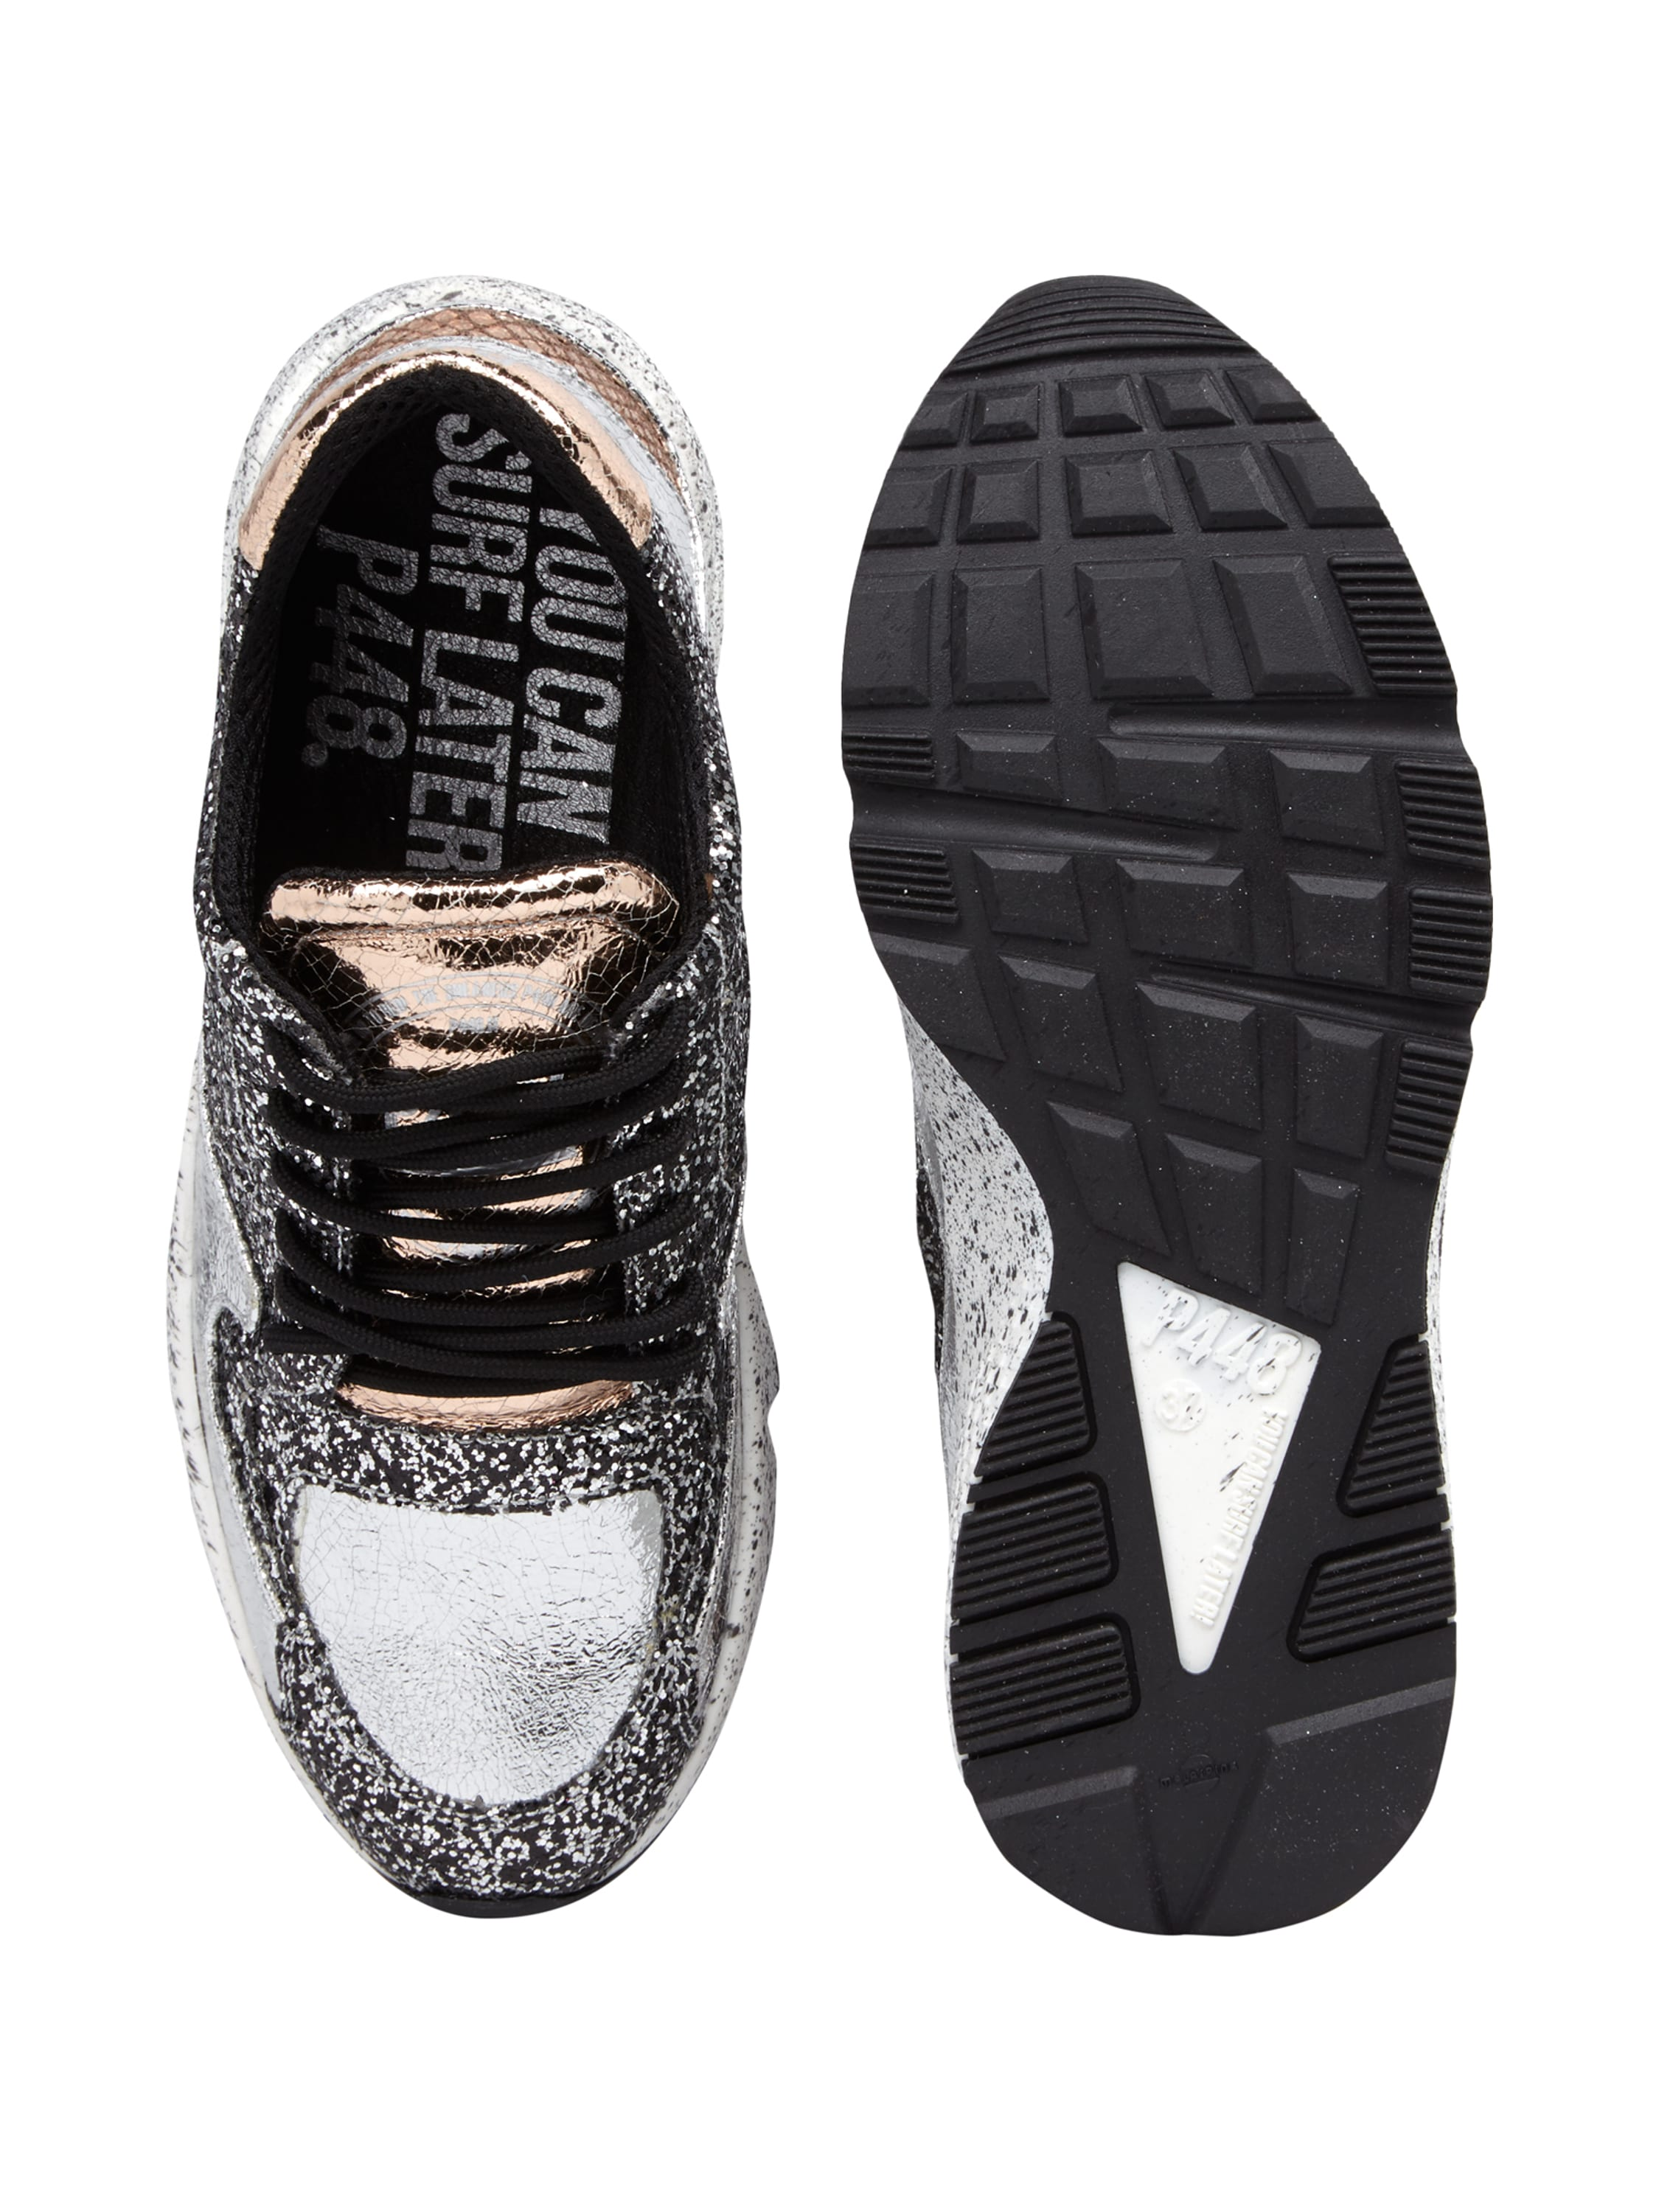 sneaker mit glitter effekt fashion id online shop. Black Bedroom Furniture Sets. Home Design Ideas